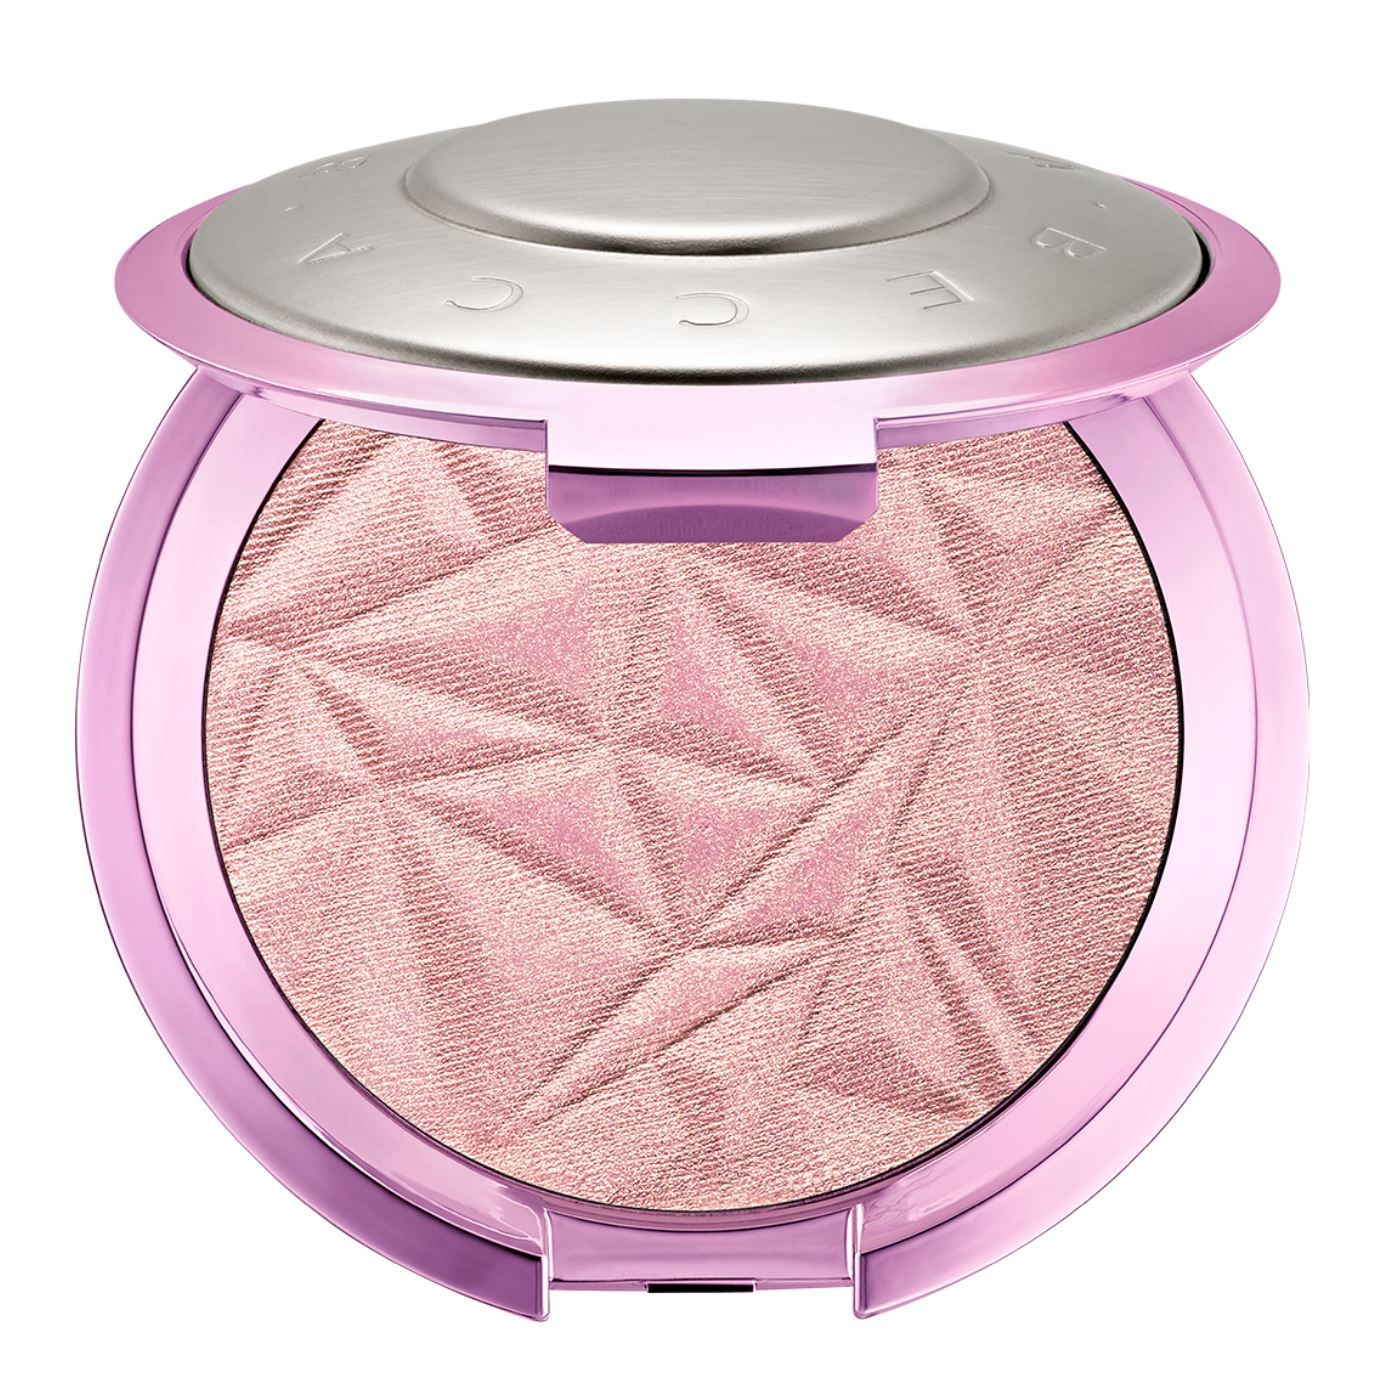 Shimmering Skin Perfector Pressed Highlighter in Lilac Geode